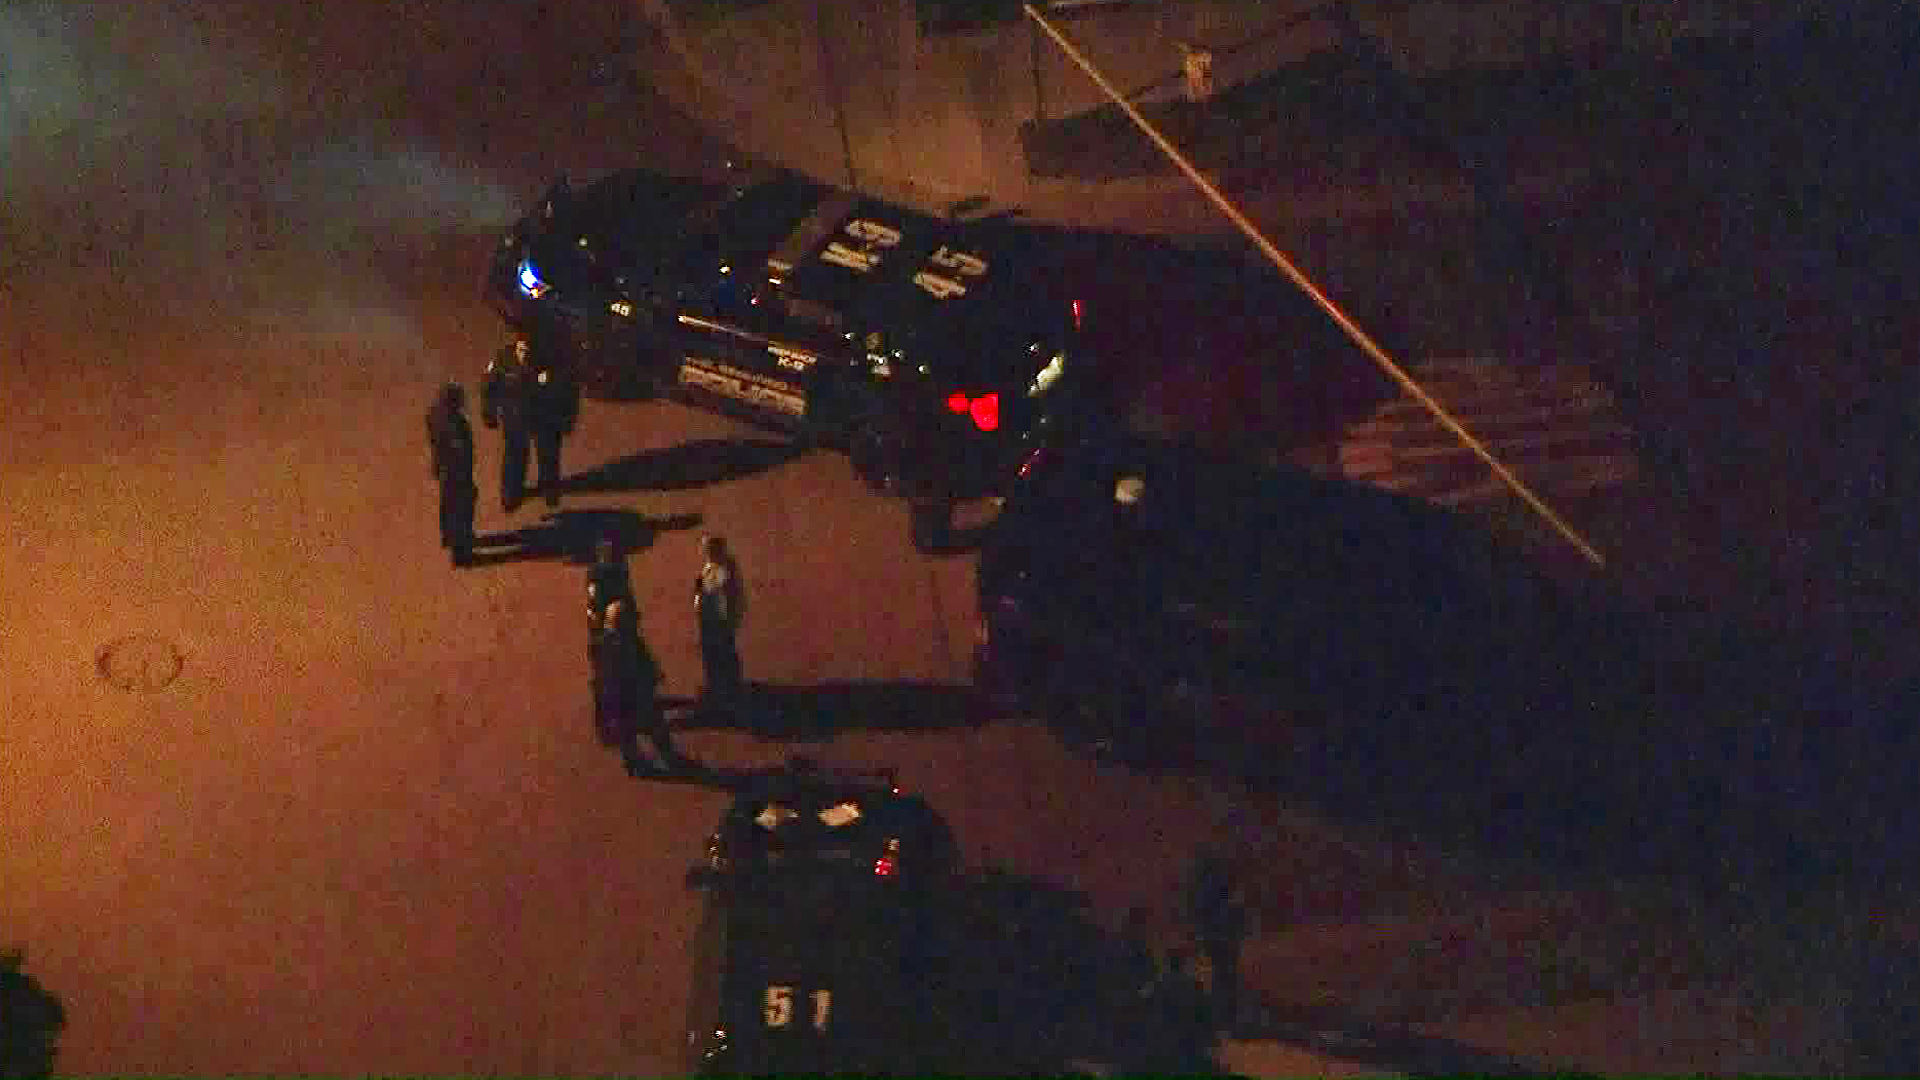 Police conduct a death investigation in El Segundo on April 30, 2019. (Credit: KTLA)